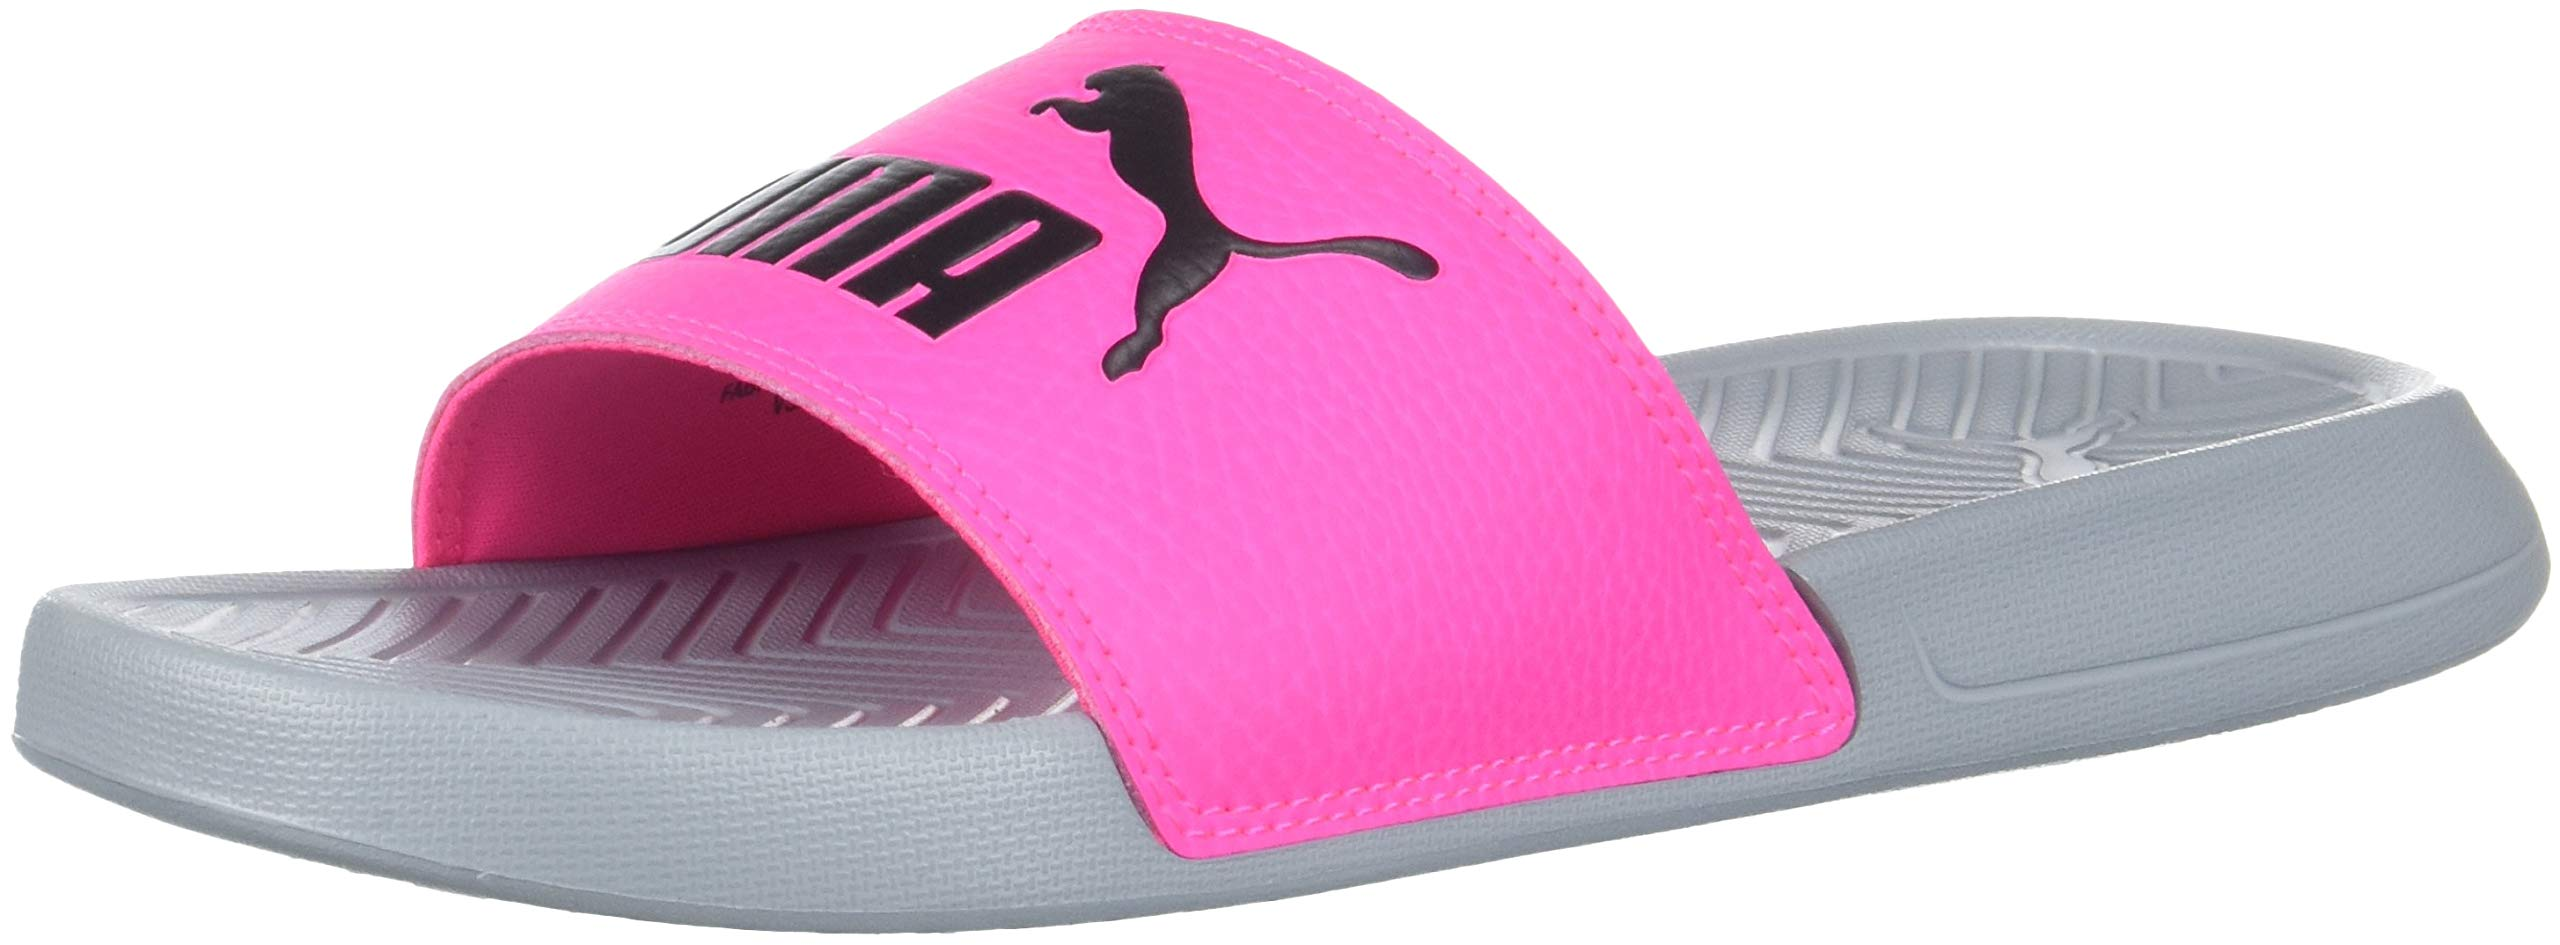 PUMA Unisex Popcat Slide Sandal, Quarry-Knockout Pink, 5 M US Big Kid